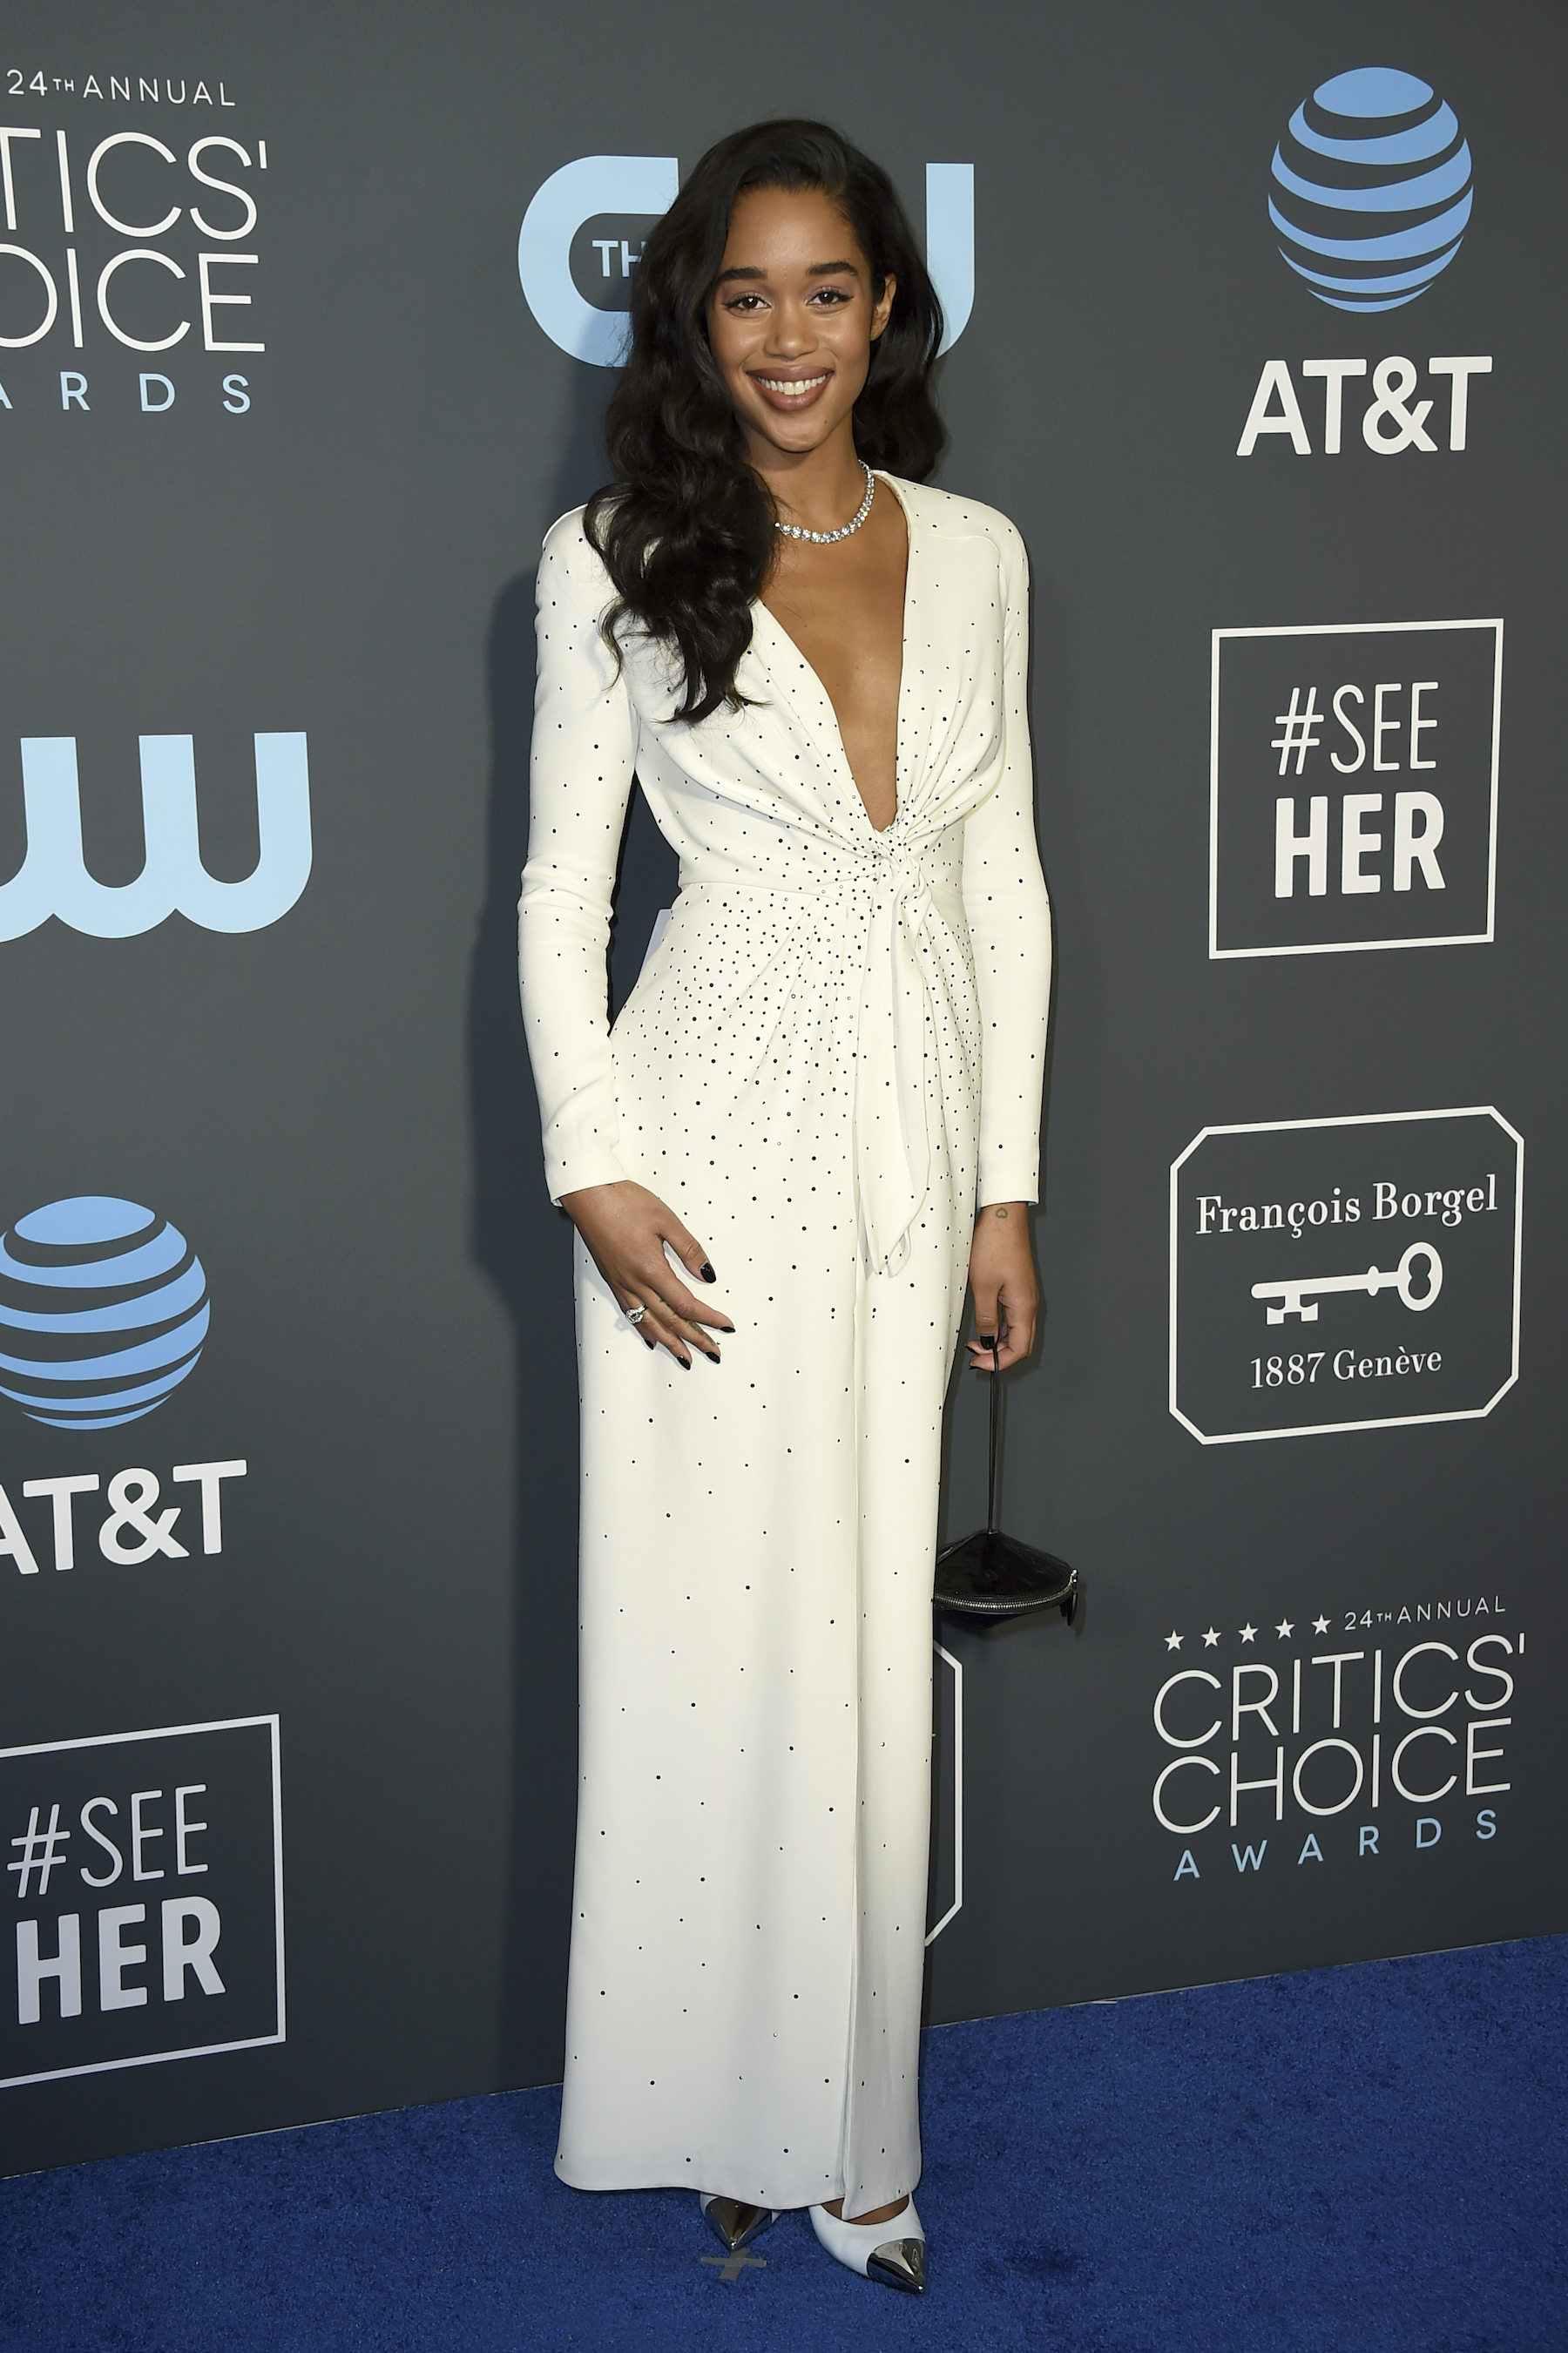 "<div class=""meta image-caption""><div class=""origin-logo origin-image ap""><span>AP</span></div><span class=""caption-text"">Laura Harrier arrives at the 24th annual Critics' Choice Awards on Sunday, Jan. 13, 2019, at the Barker Hangar in Santa Monica, Calif. (Jordan Strauss/Invision/AP)</span></div>"